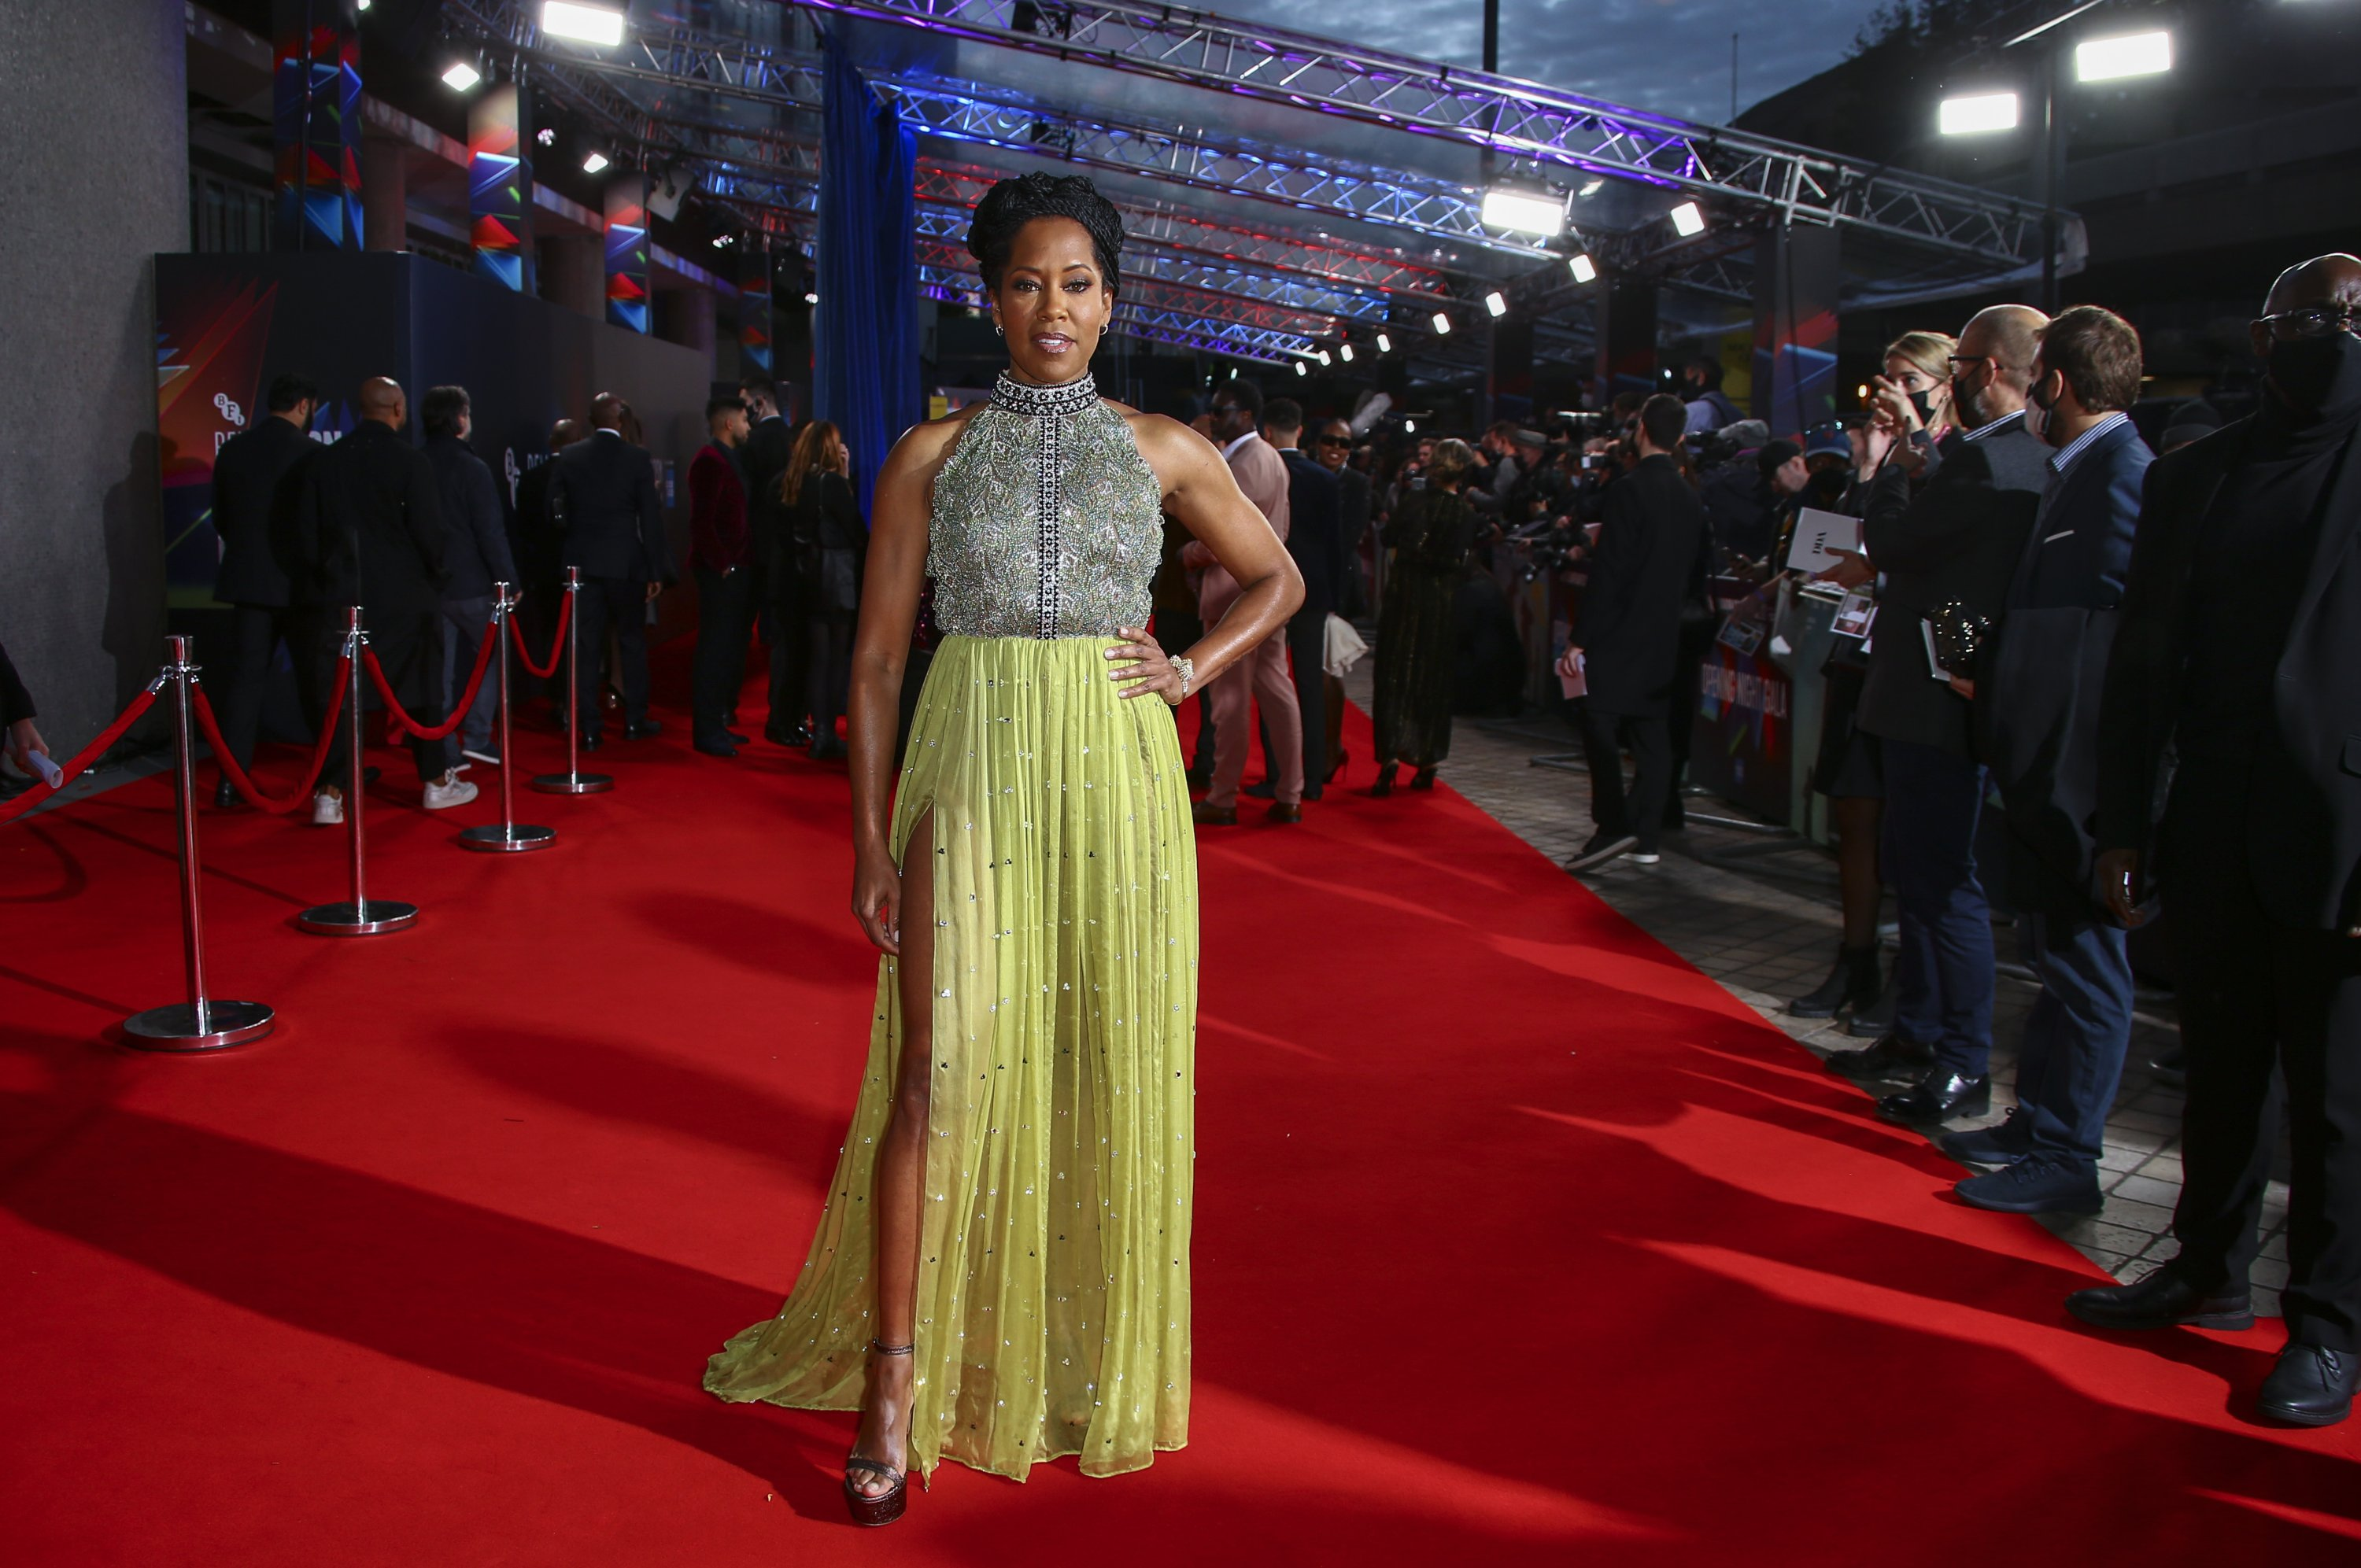 Regina King poses for photographers upon arrival at the opening of the London film festival and the World premiere of the film 'The Harder They Fall' in London, Oct. 6, 2021. (AP)